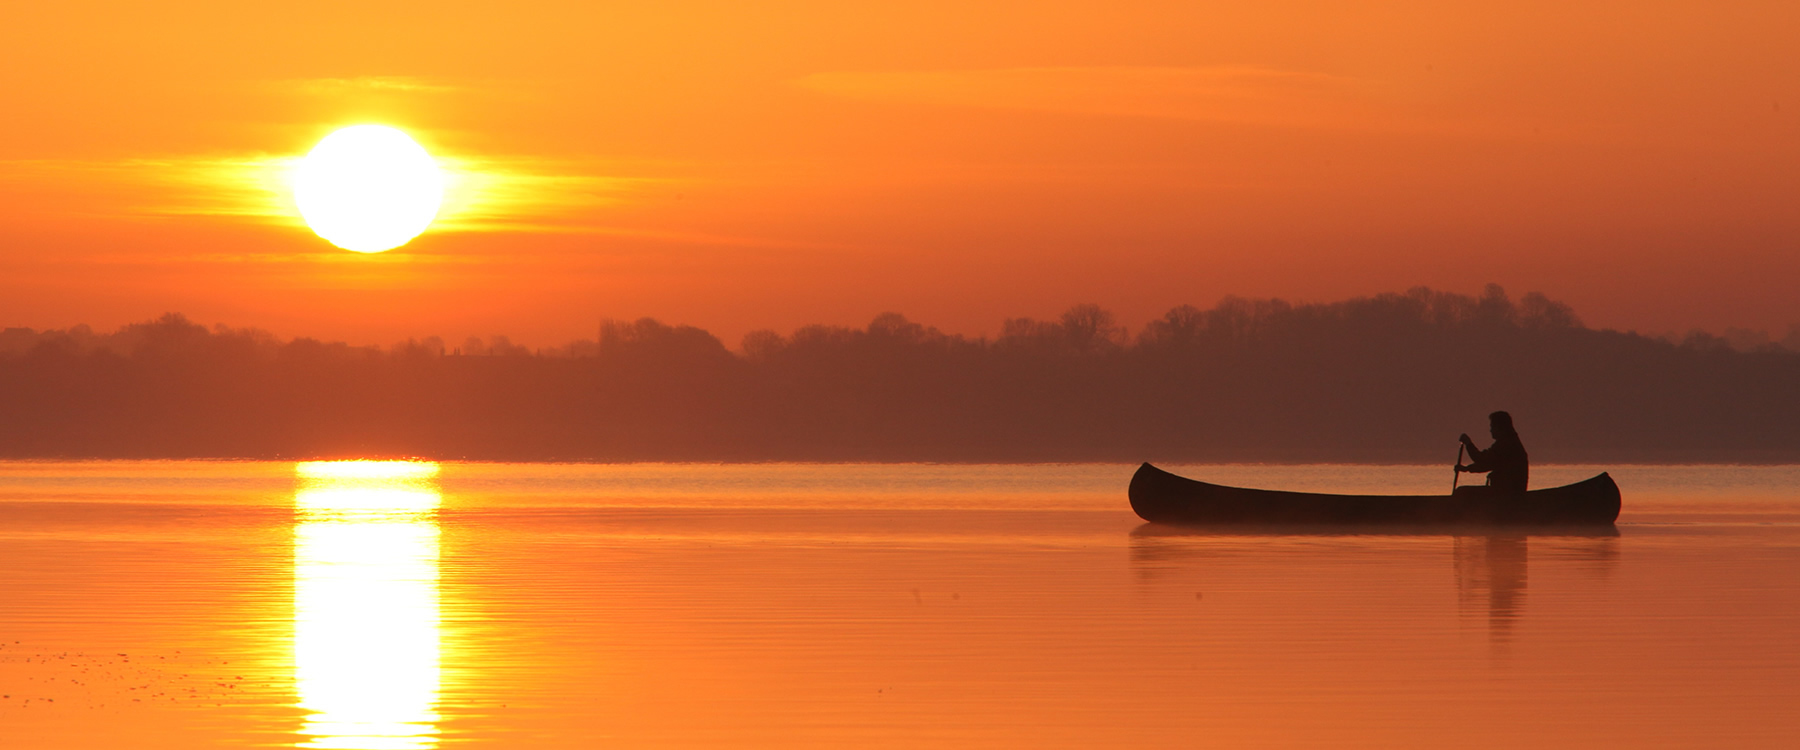 Person paddling in a canoe on a river at sunrise